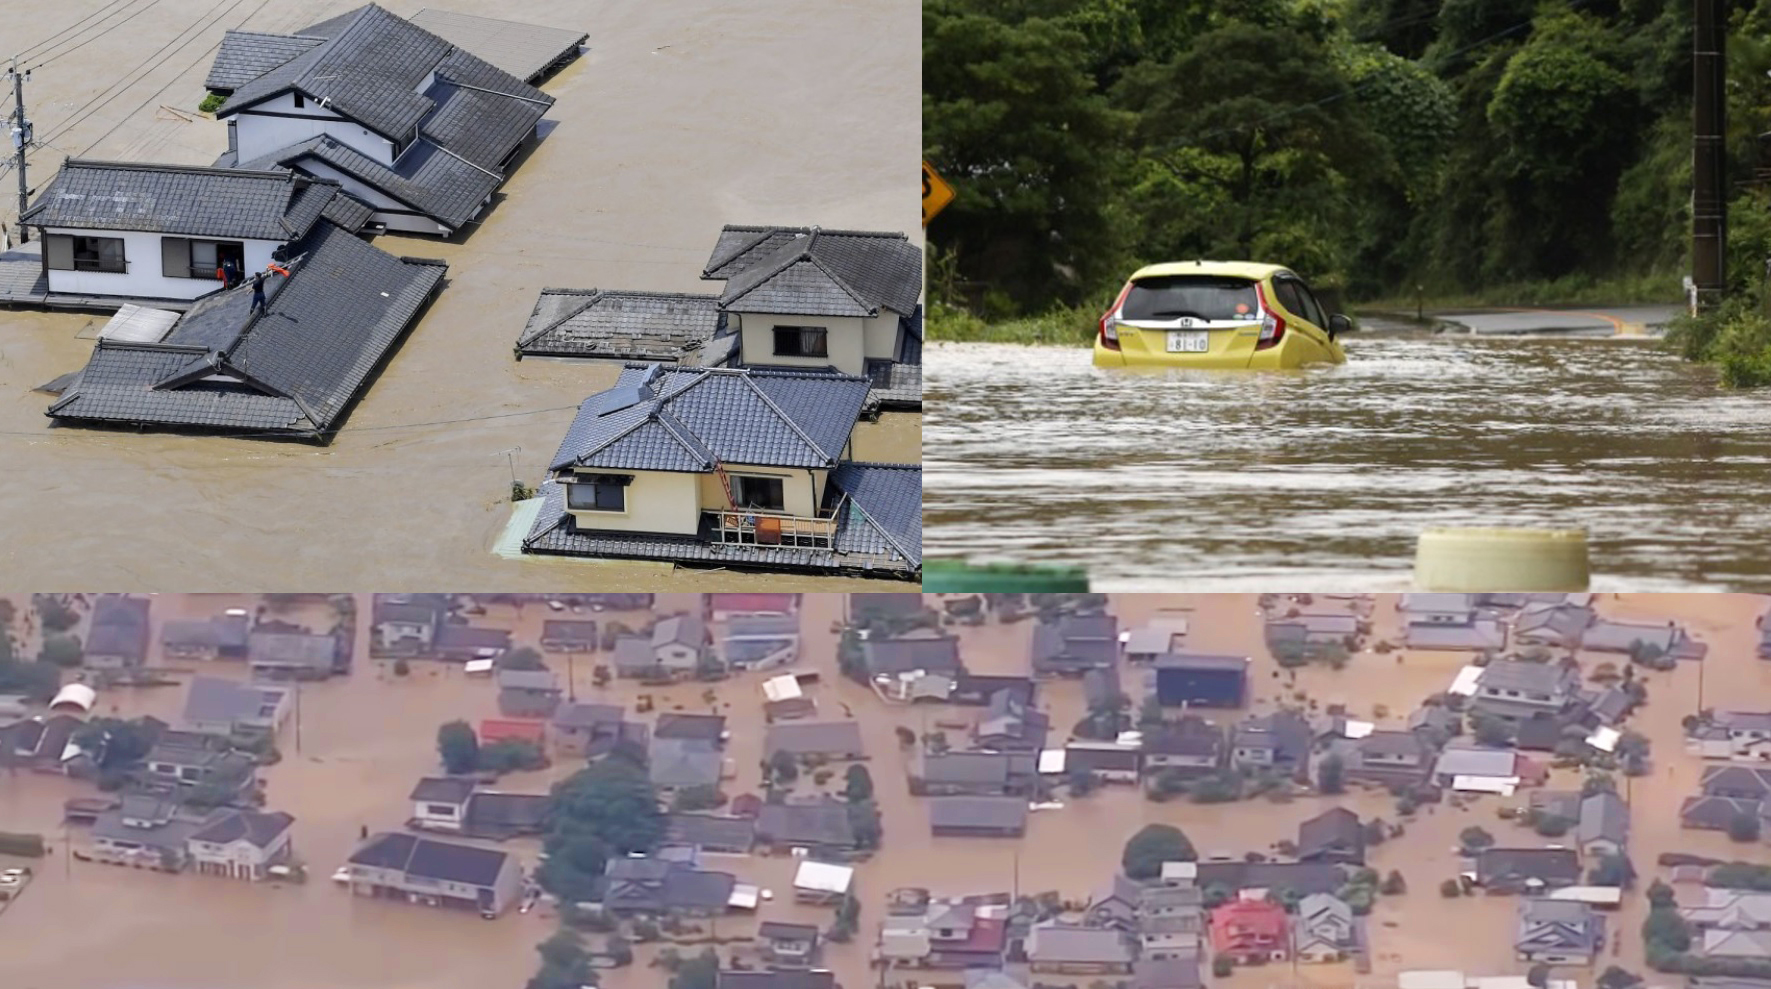 Japan Flood- 15 Deaths and 9 Missing in Heavy Rain